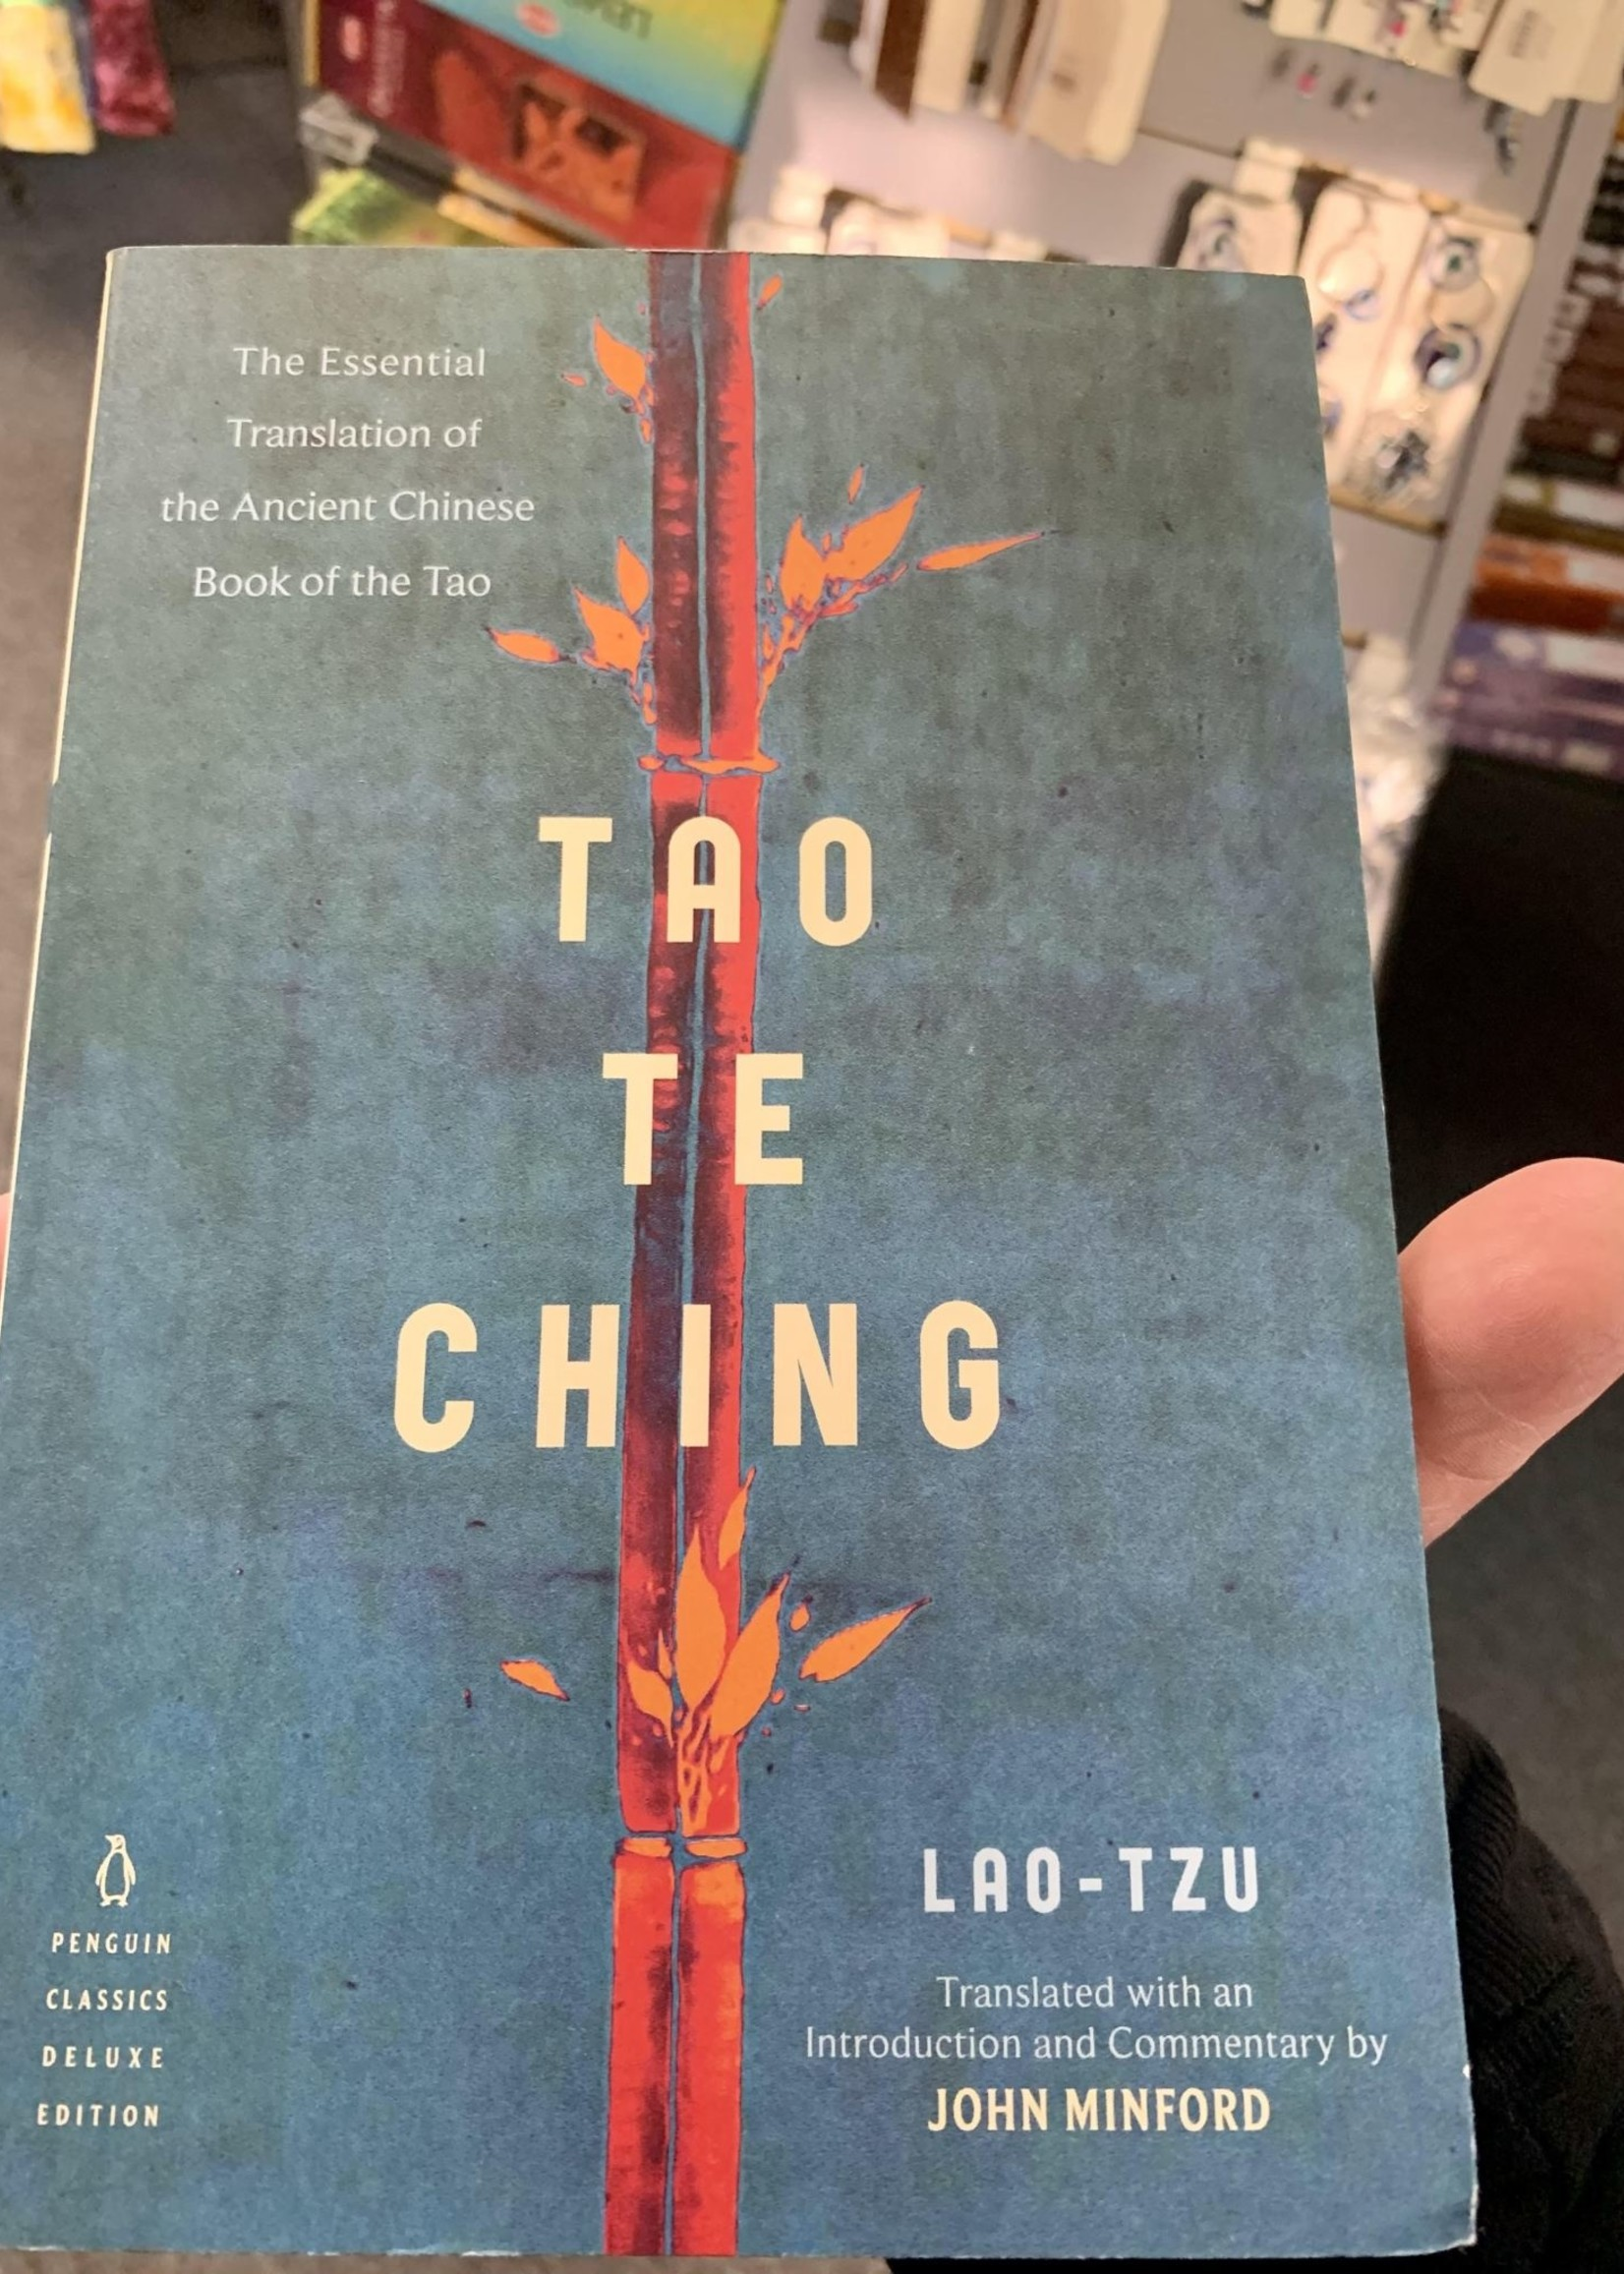 Tao Te Ching THE ESSENTIAL TRANSLATION OF THE ANCIENT CHINESE BOOK OF THE TAO (PENGUIN CLASSICS DELUXE EDITION) - By LAO TZU Translated by John Minford